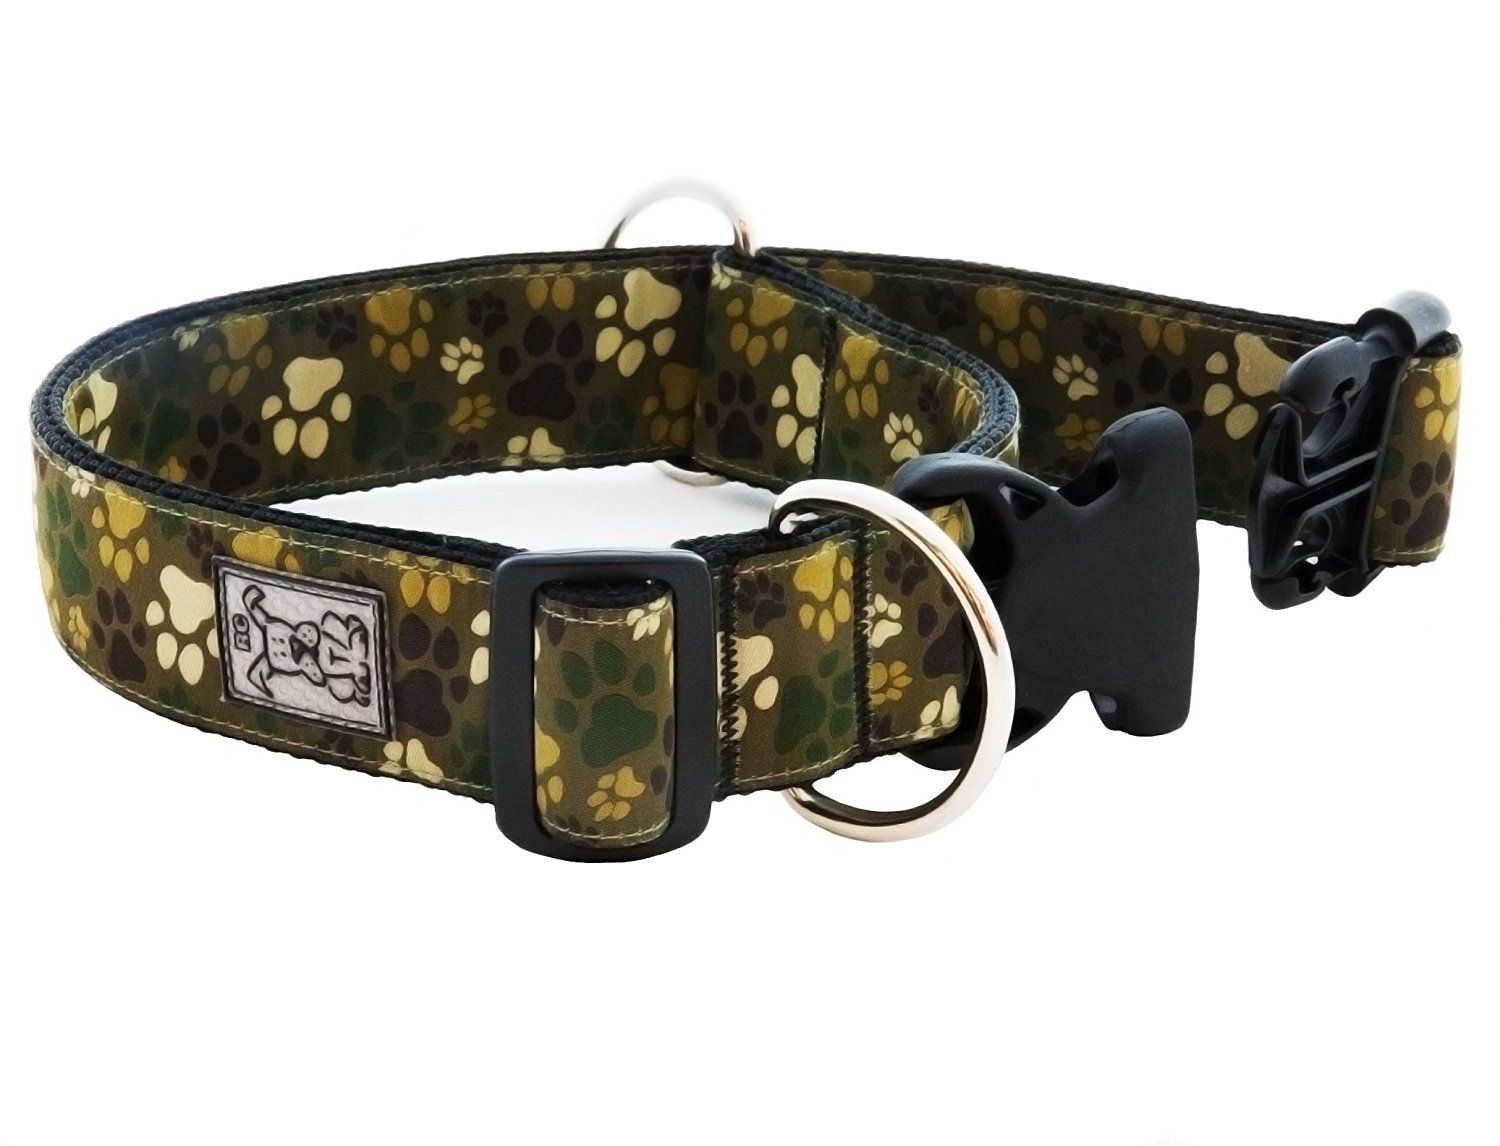 Rc Pet Products 1 1 2 Inch Dog Safety Clip Collar X Large Pitter Patter Camo Want Additional Info Click On The Image This Dog Safety Safety Clip Pets